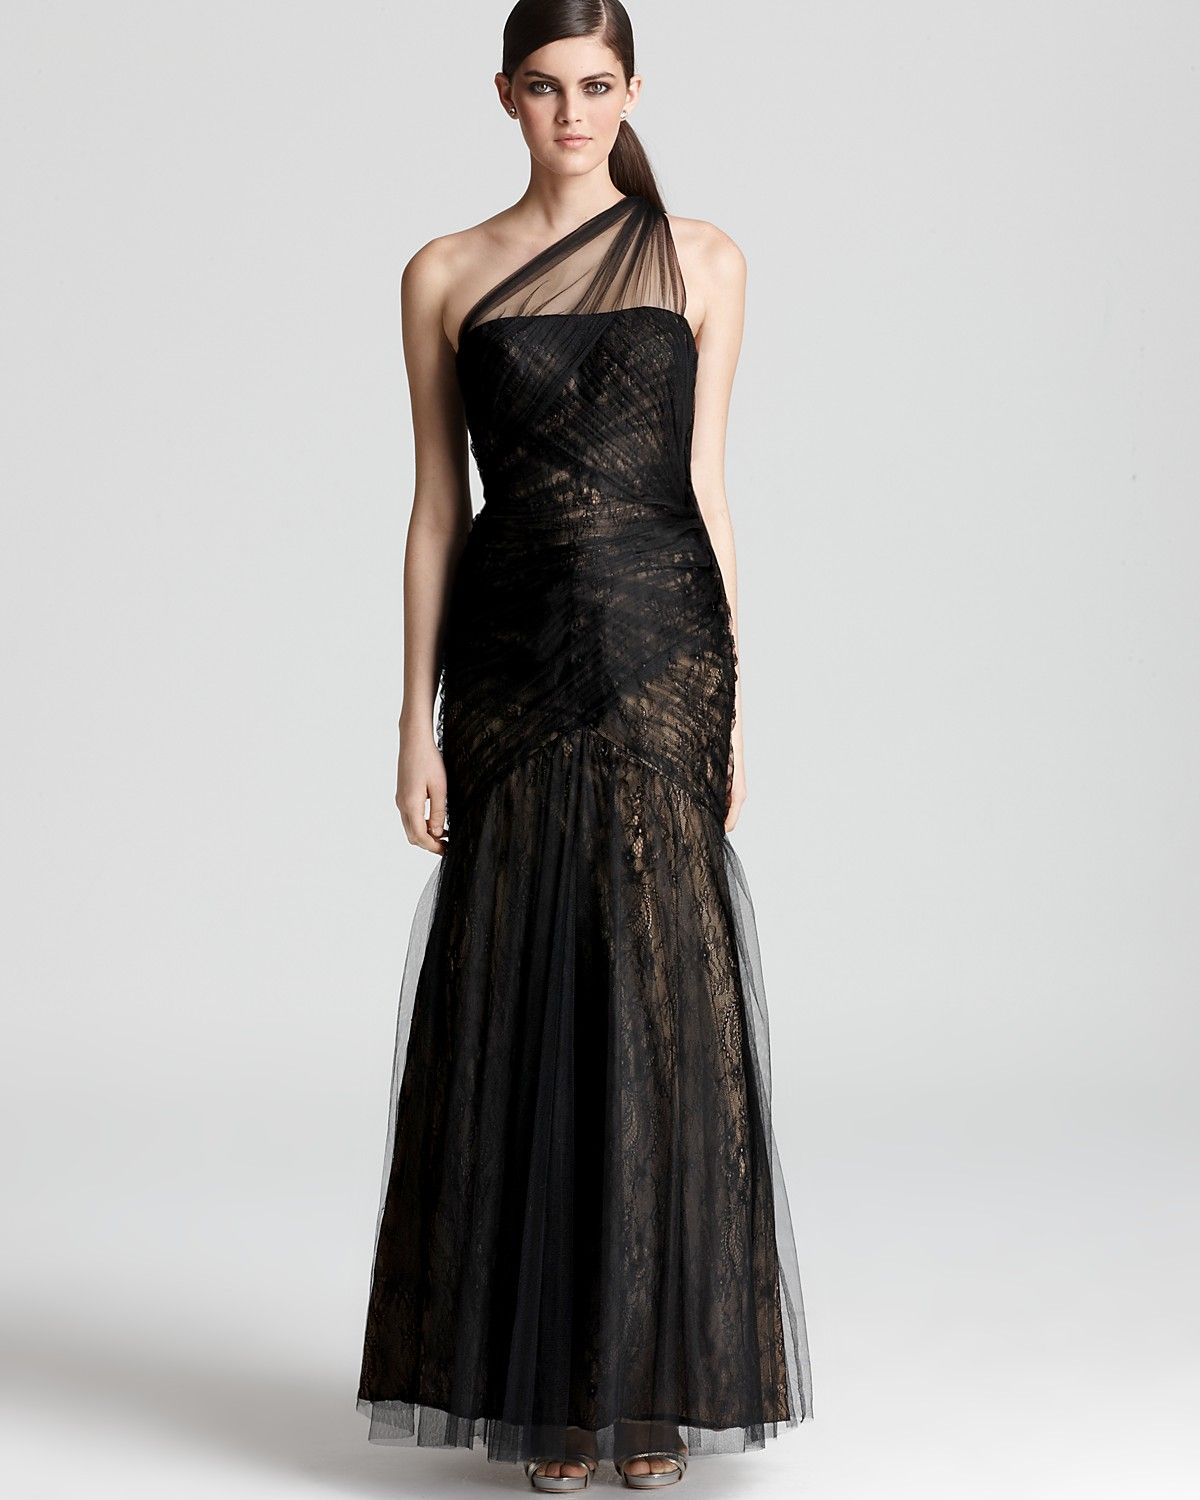 ML Monique Lhuillier One Shoulder Gown - Tulle Overlay